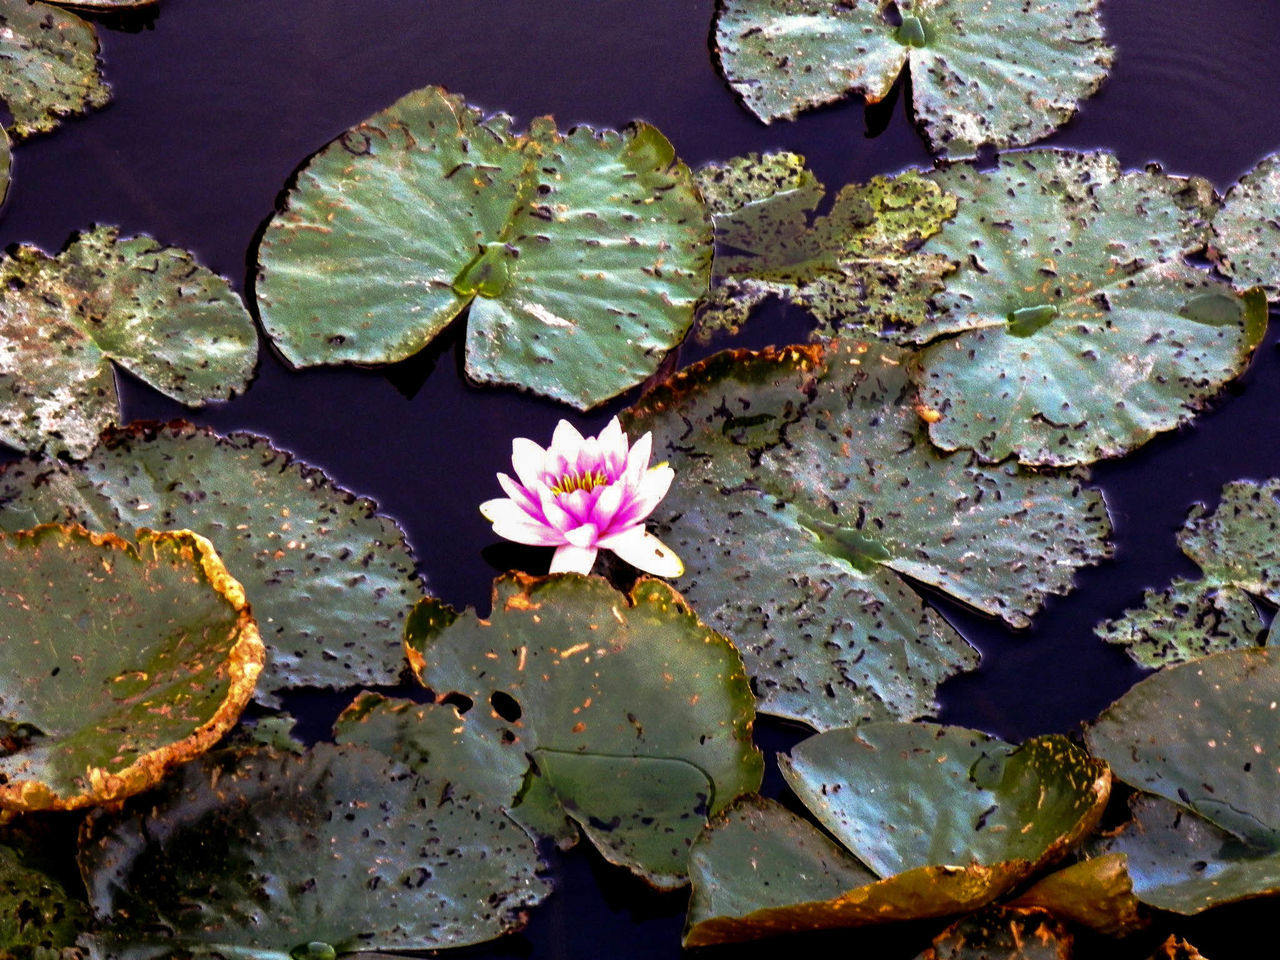 leaf, growth, flower, nature, beauty in nature, fragility, no people, lily pad, water lily, water, high angle view, petal, freshness, day, plant, outdoors, flower head, floating on water, lake, lotus water lily, close-up